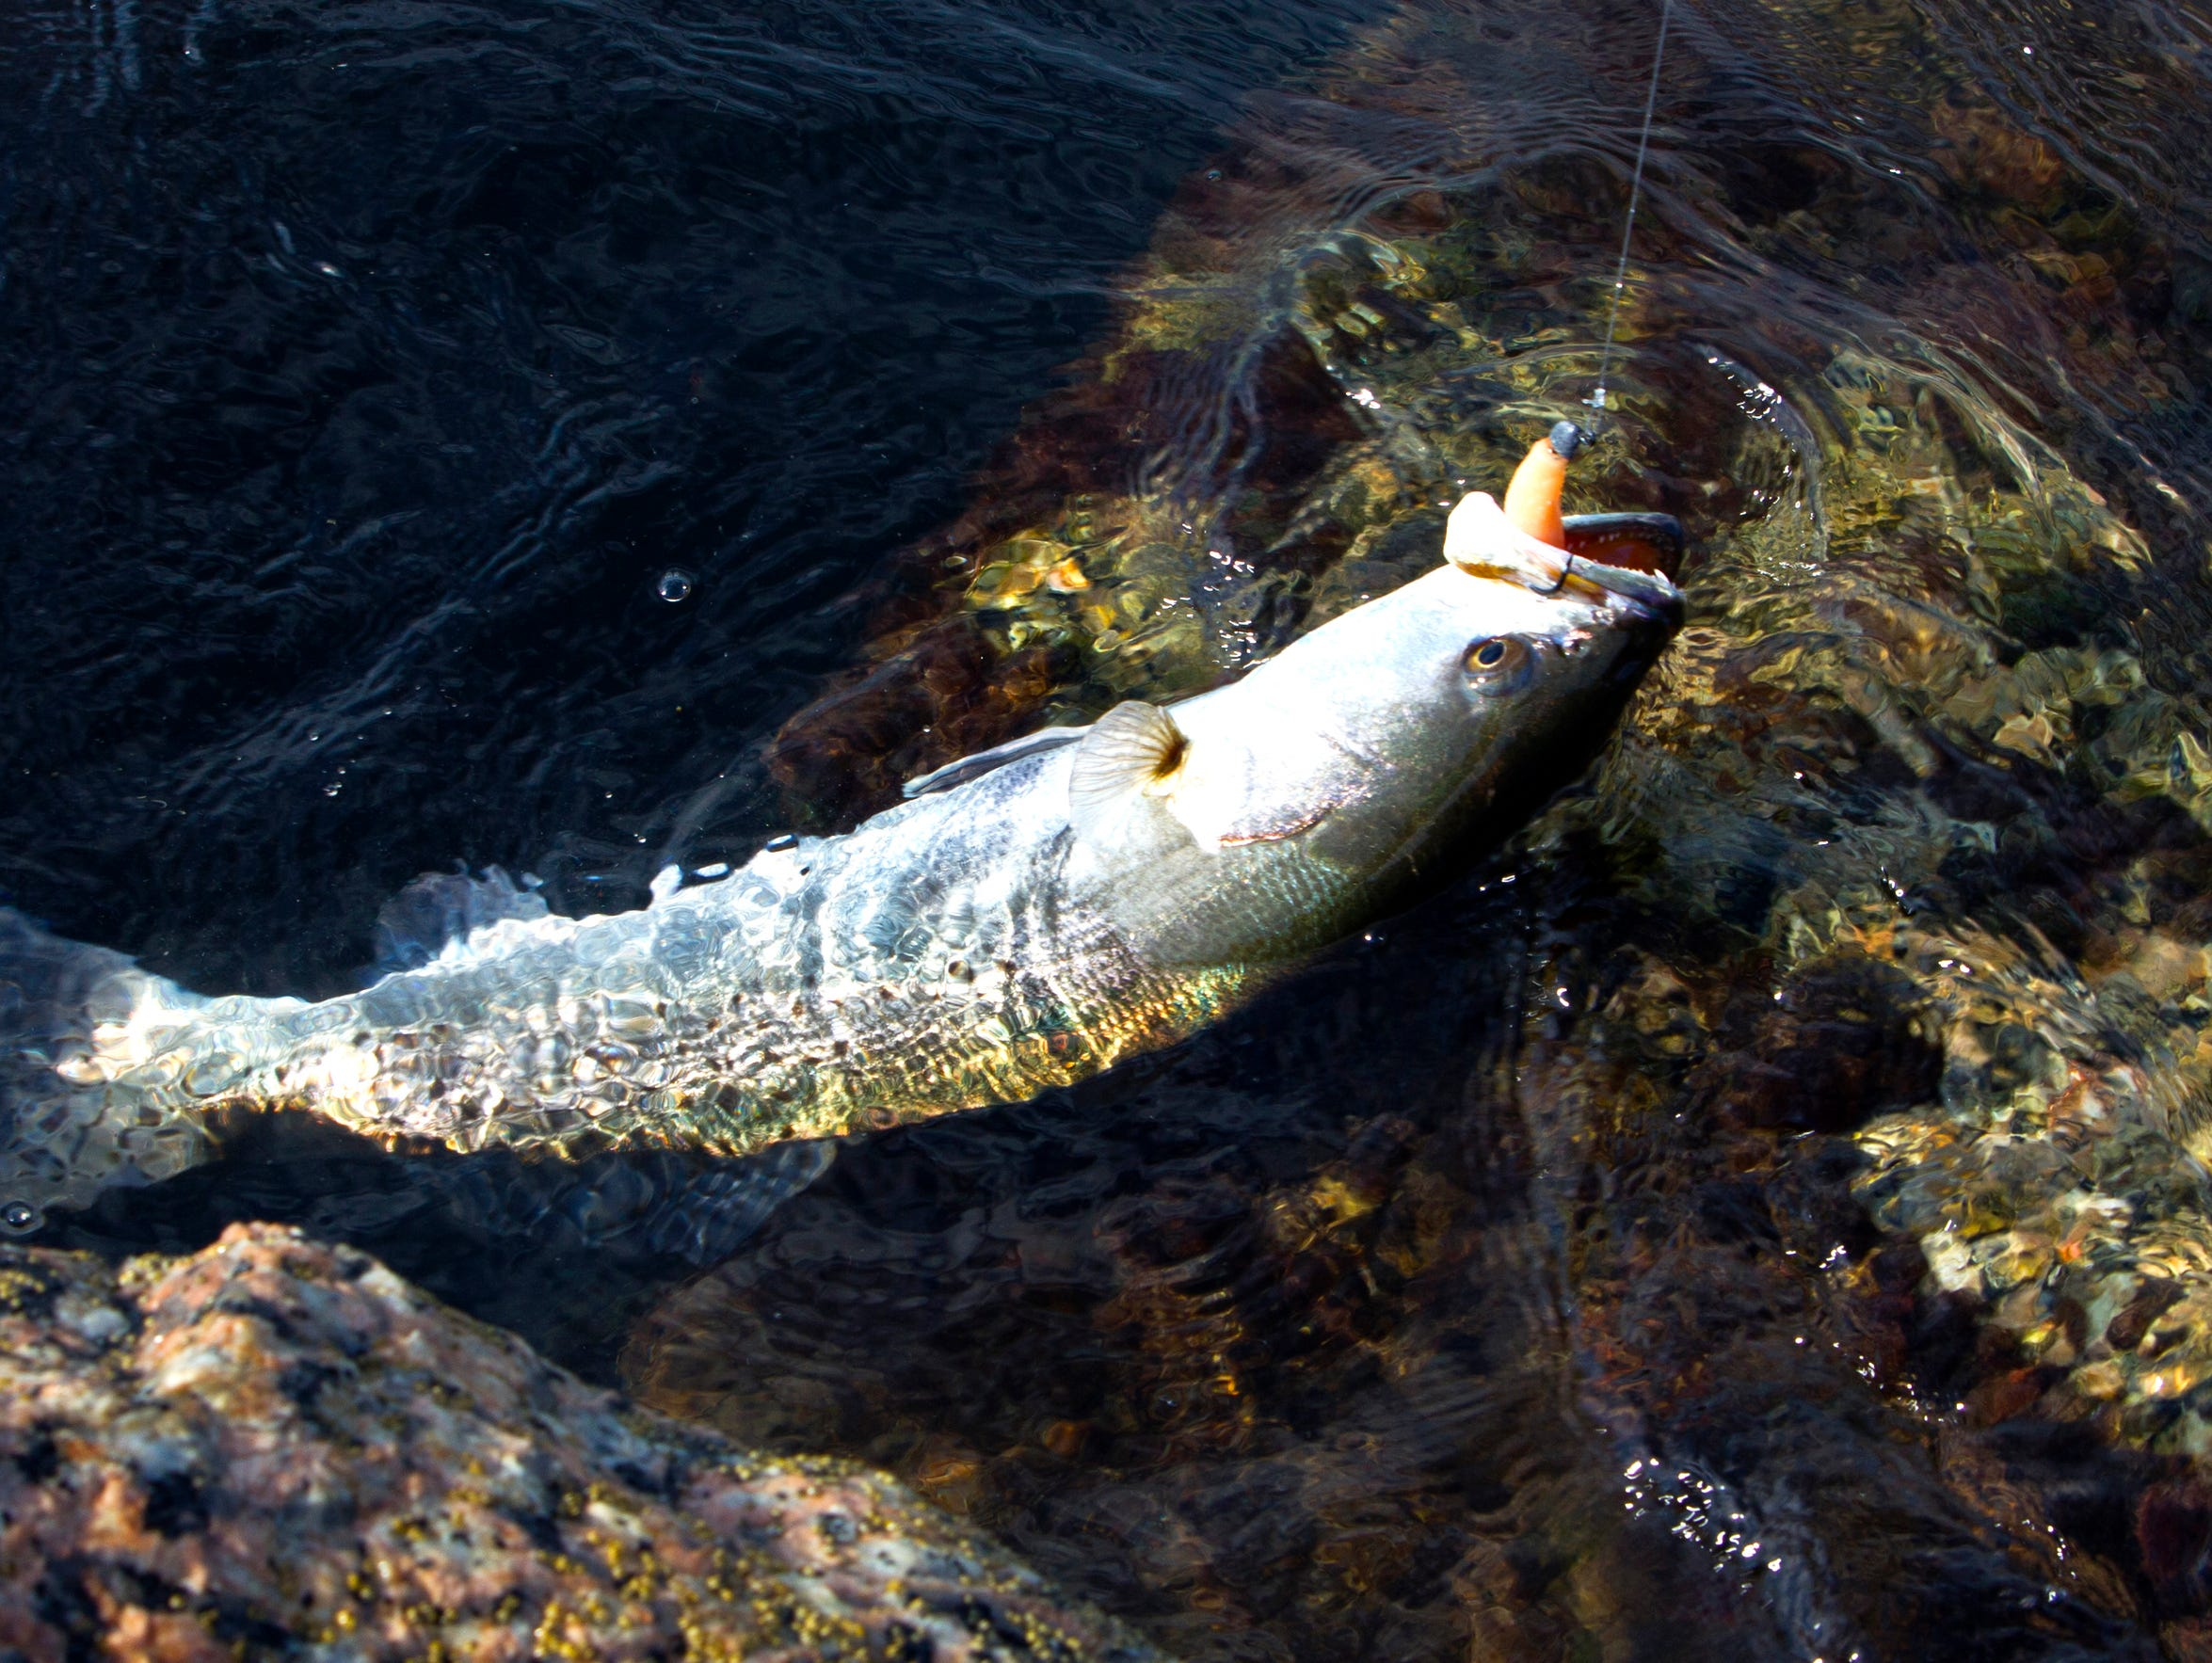 Speckled trout are caught near jetties year-round in